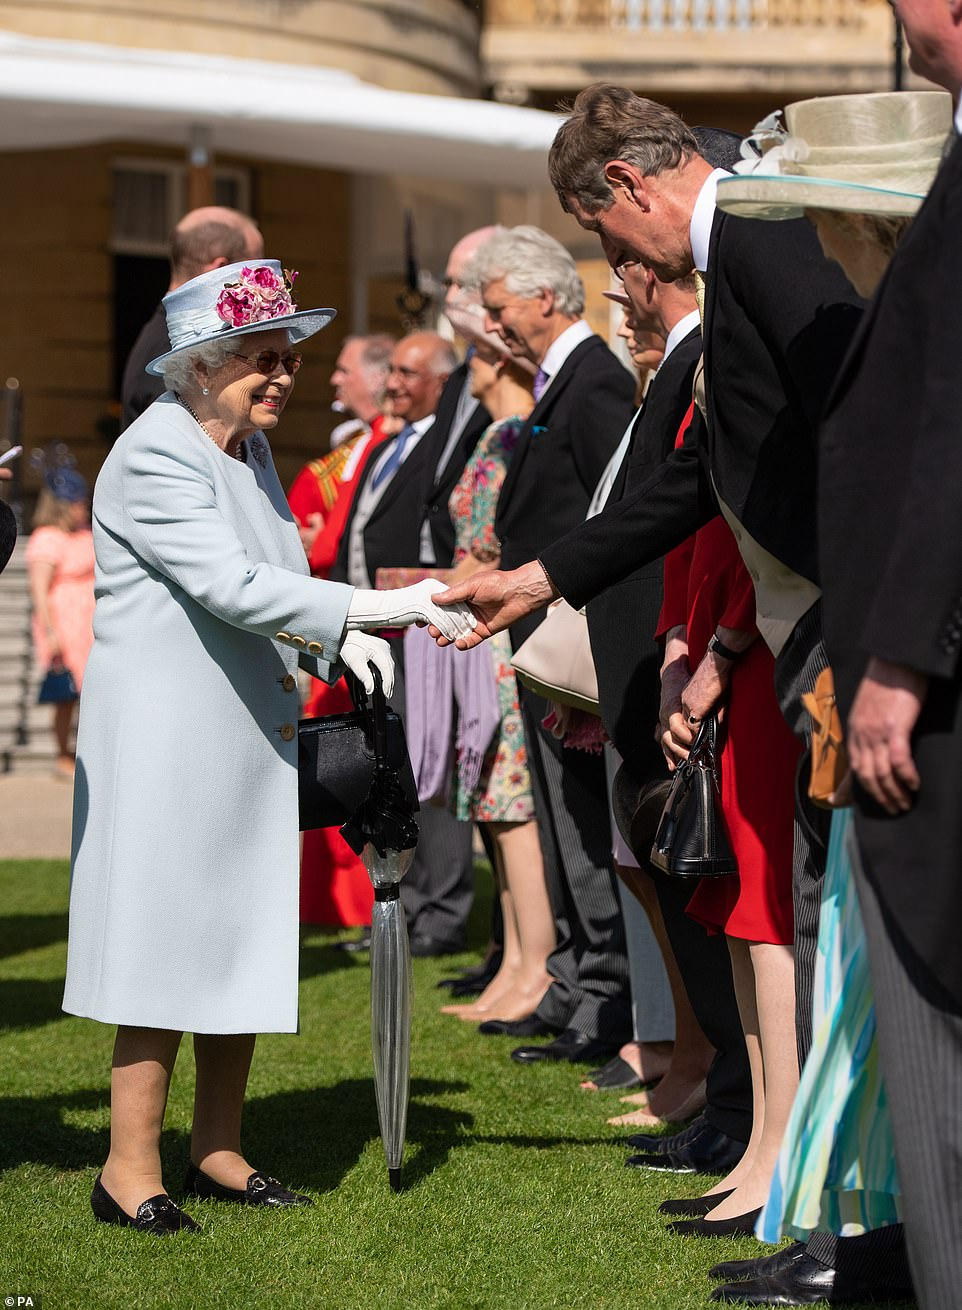 The Queen greets guests at the garden party, which gives Her Majesty the opportunity to meet people from across the UK